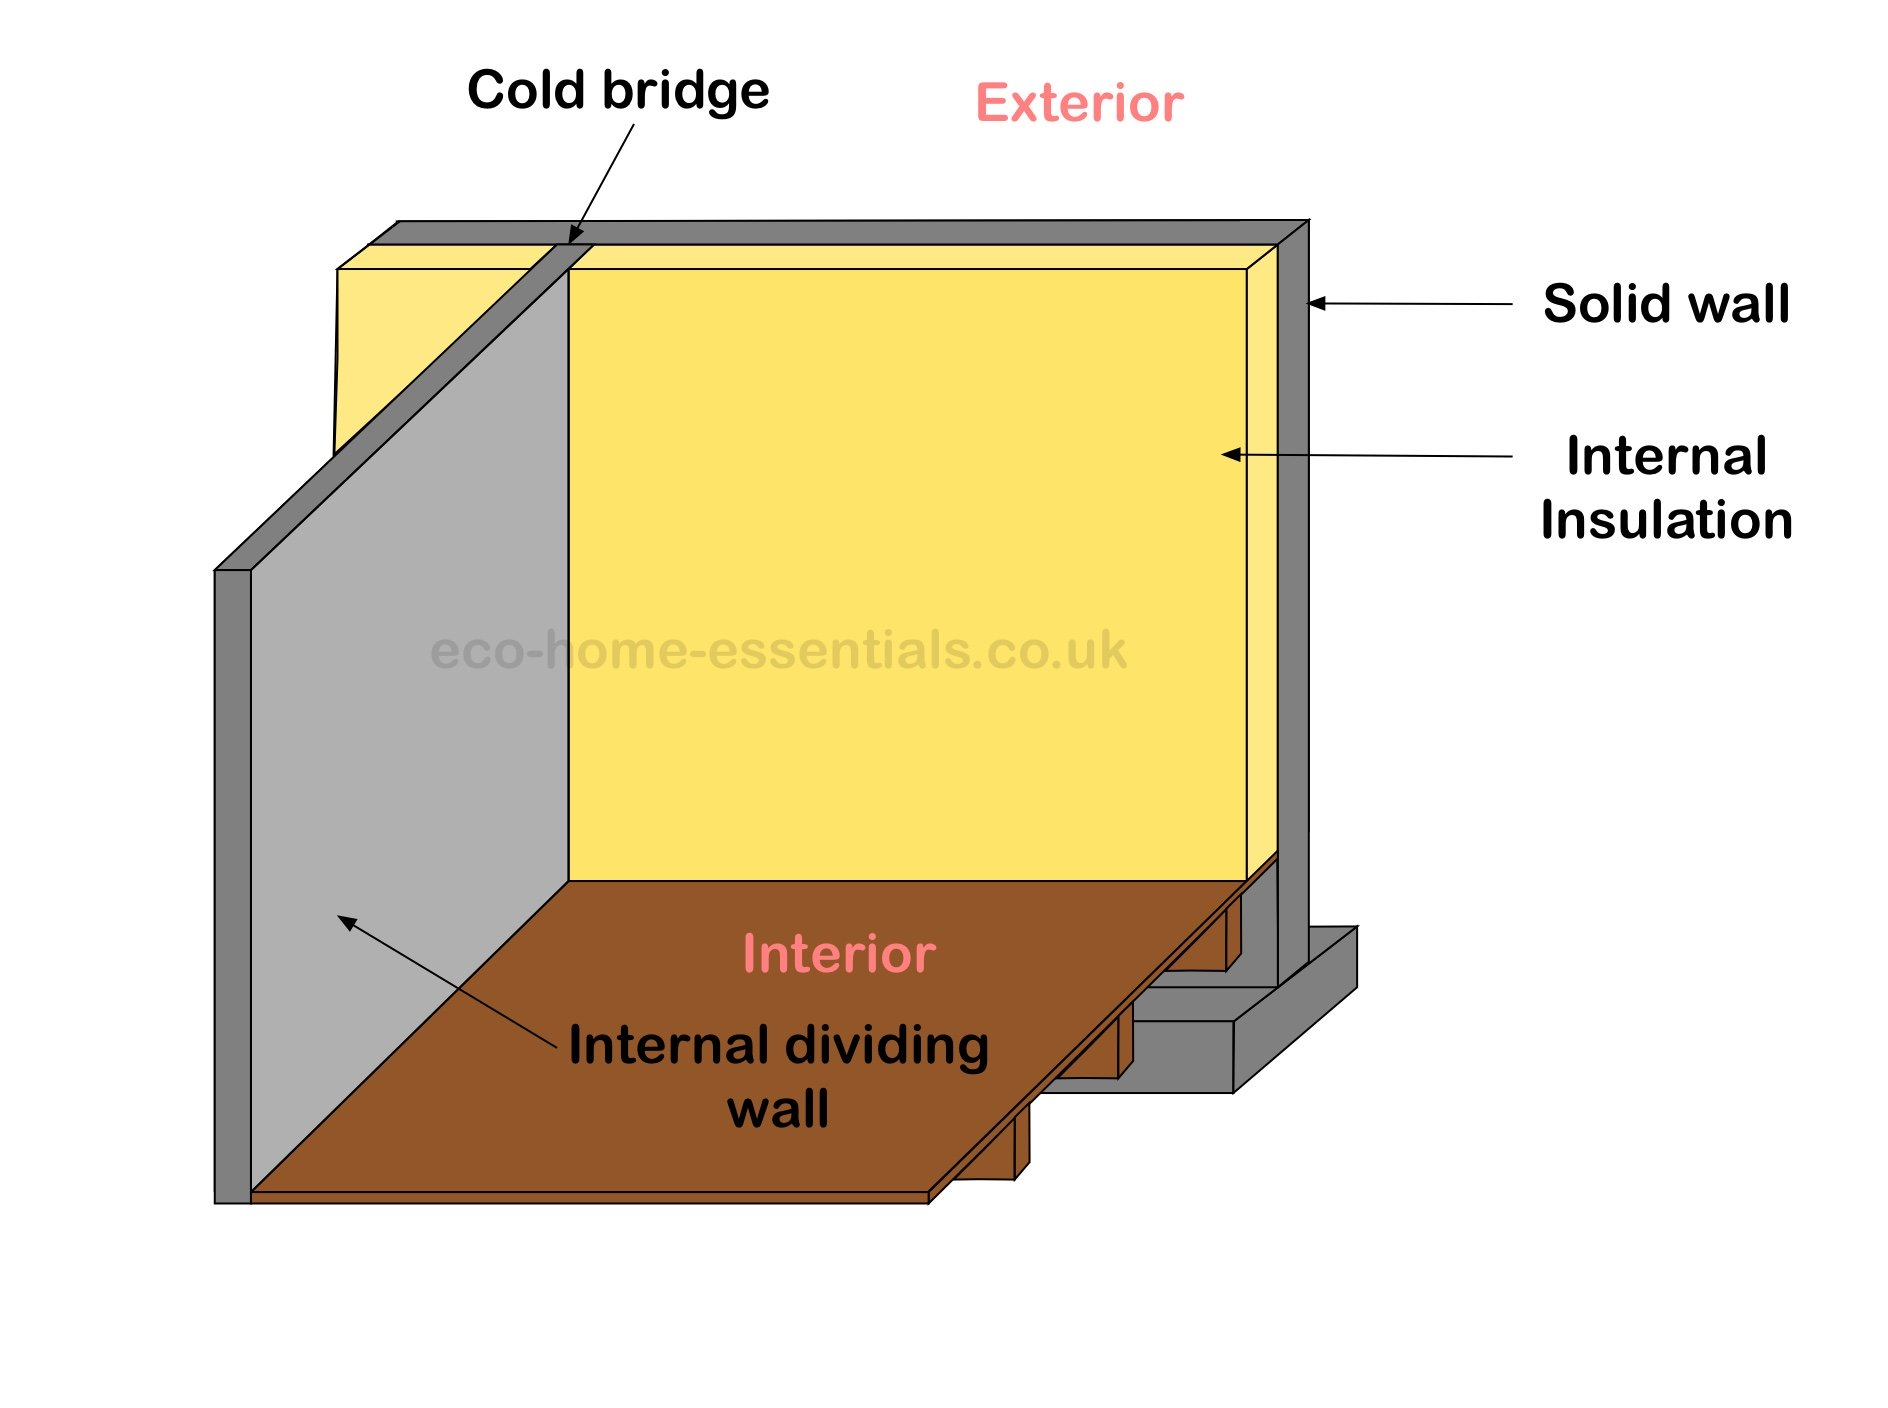 internal insulation/cold bridging